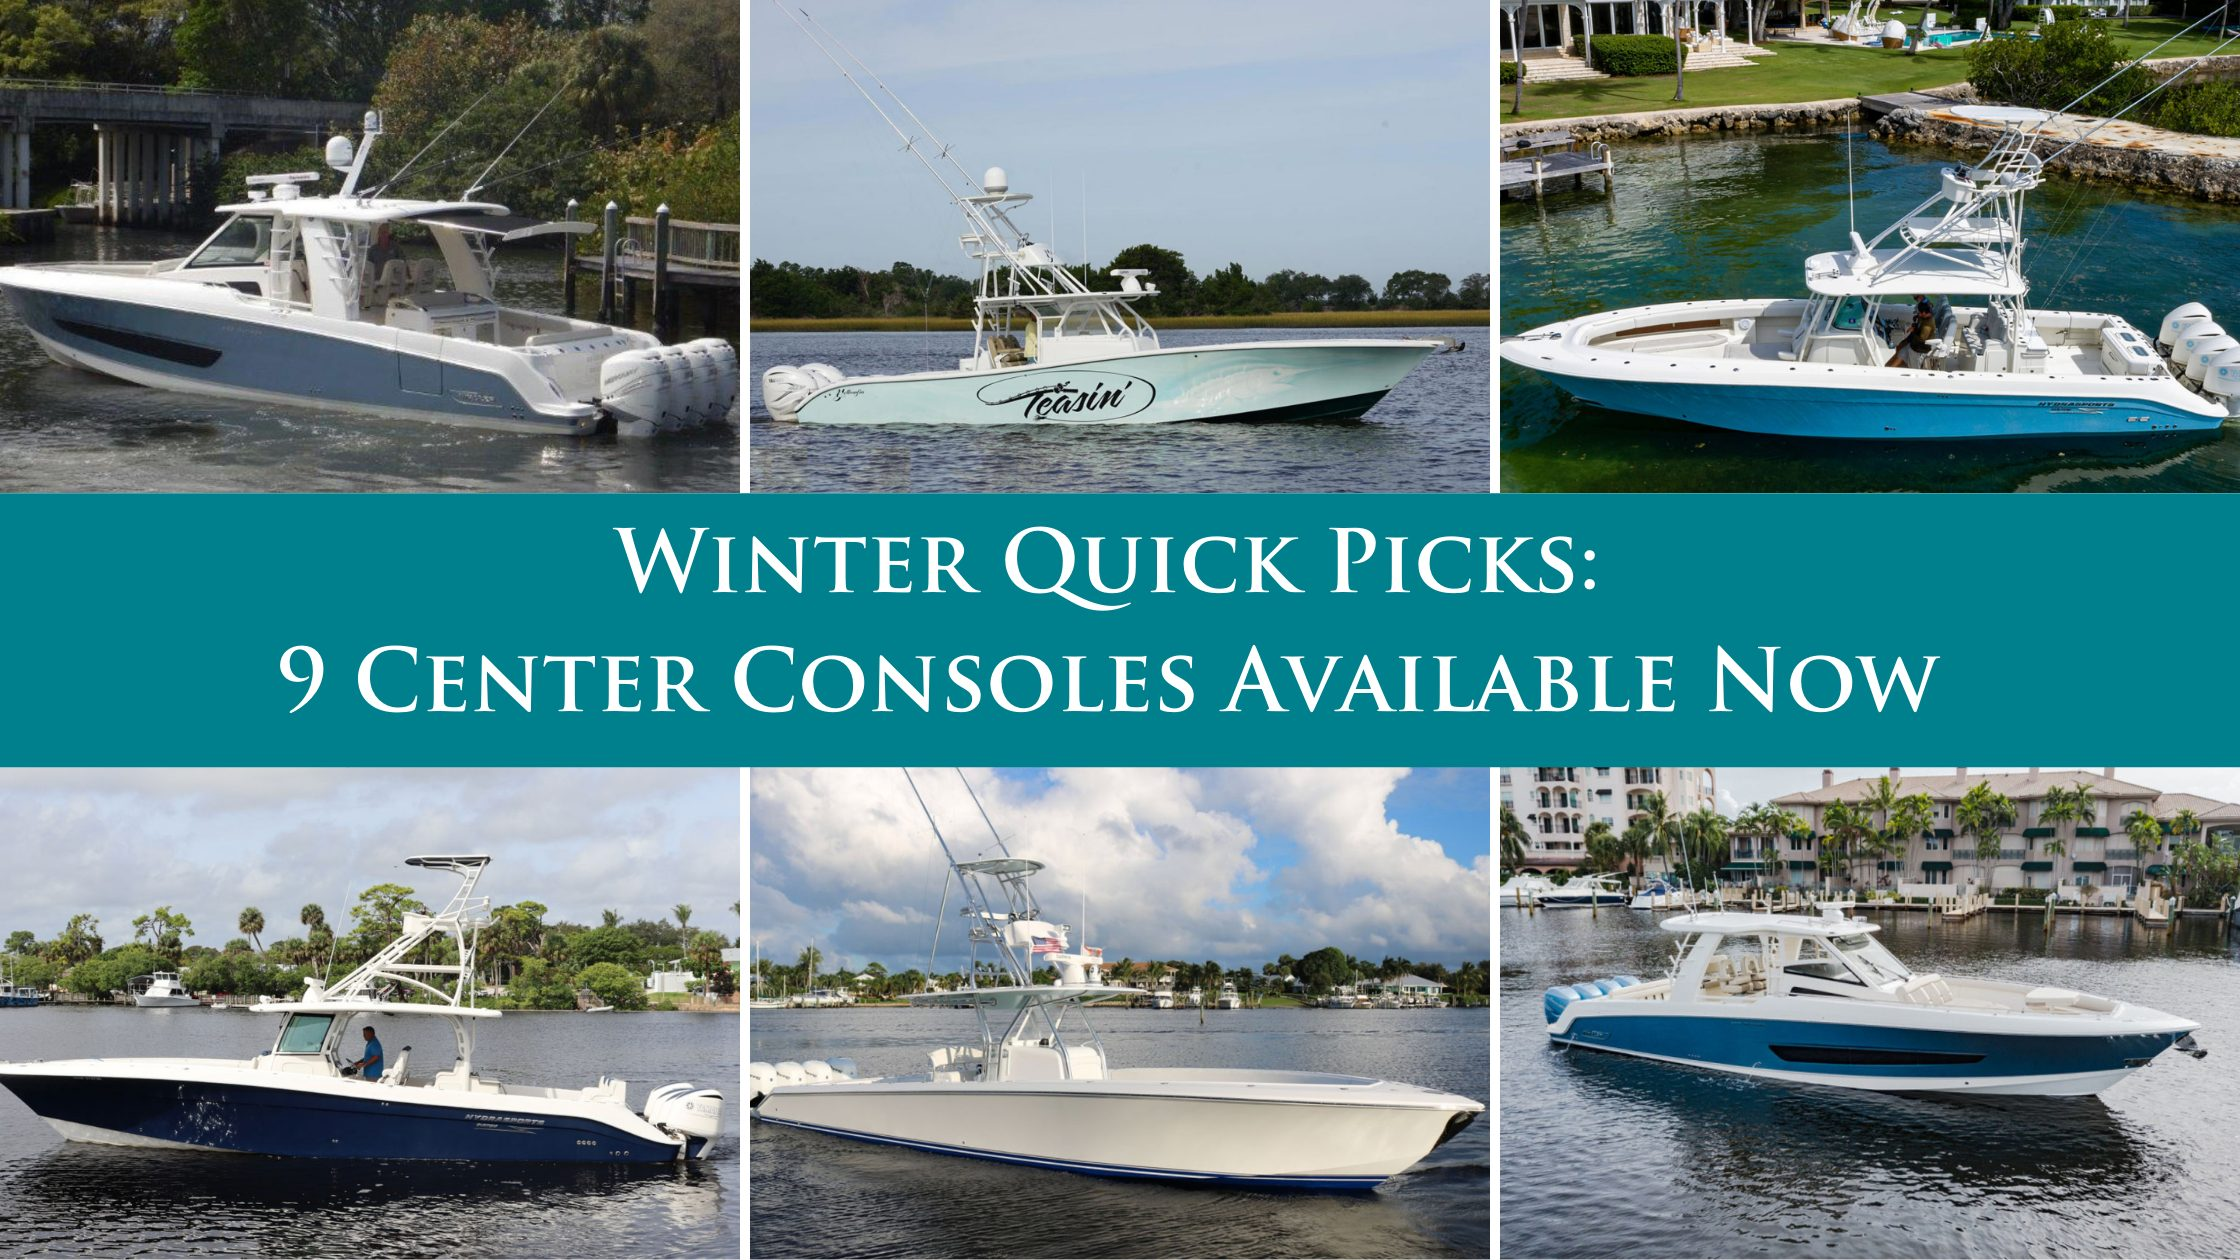 Winter Quick Picks: HMY's Top Center Console Listings